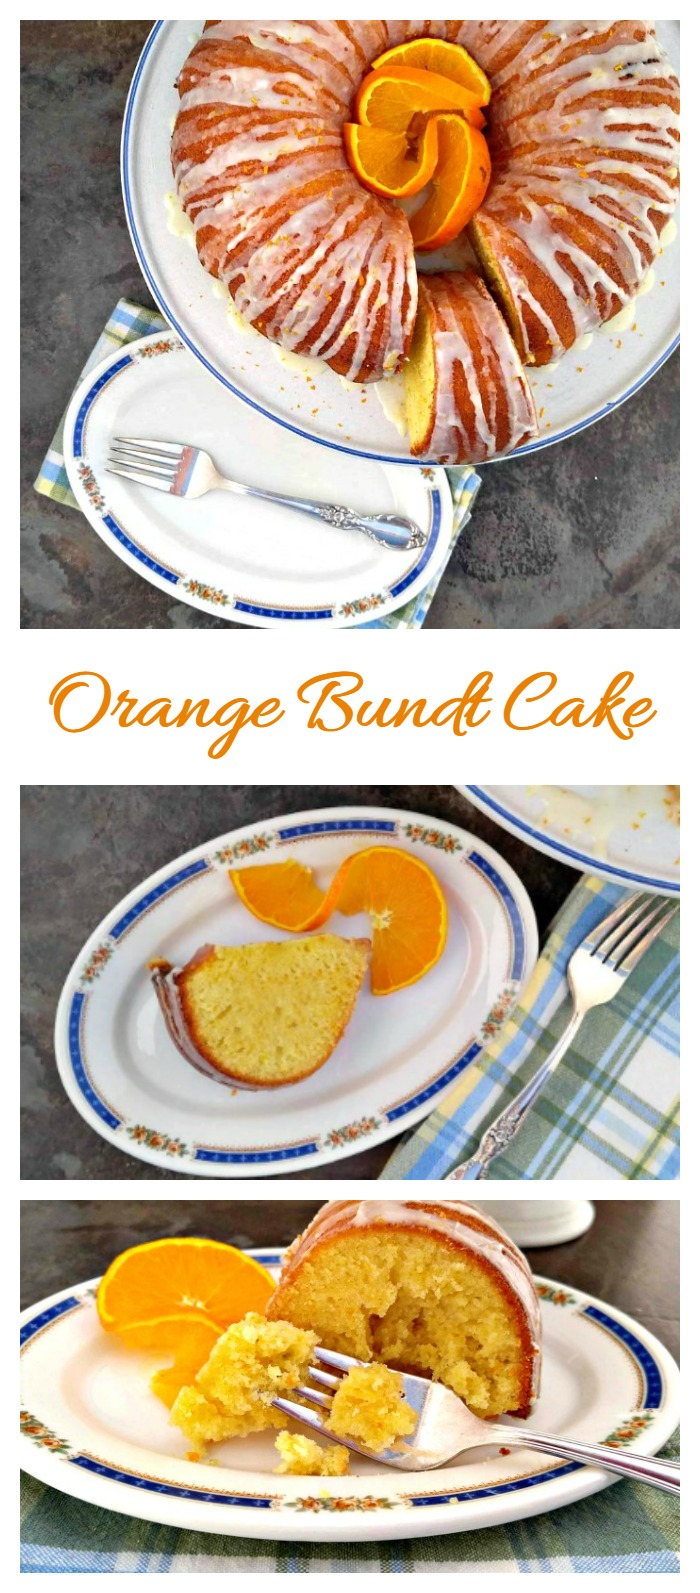 Orange Bundt Cake with Orange Glaze